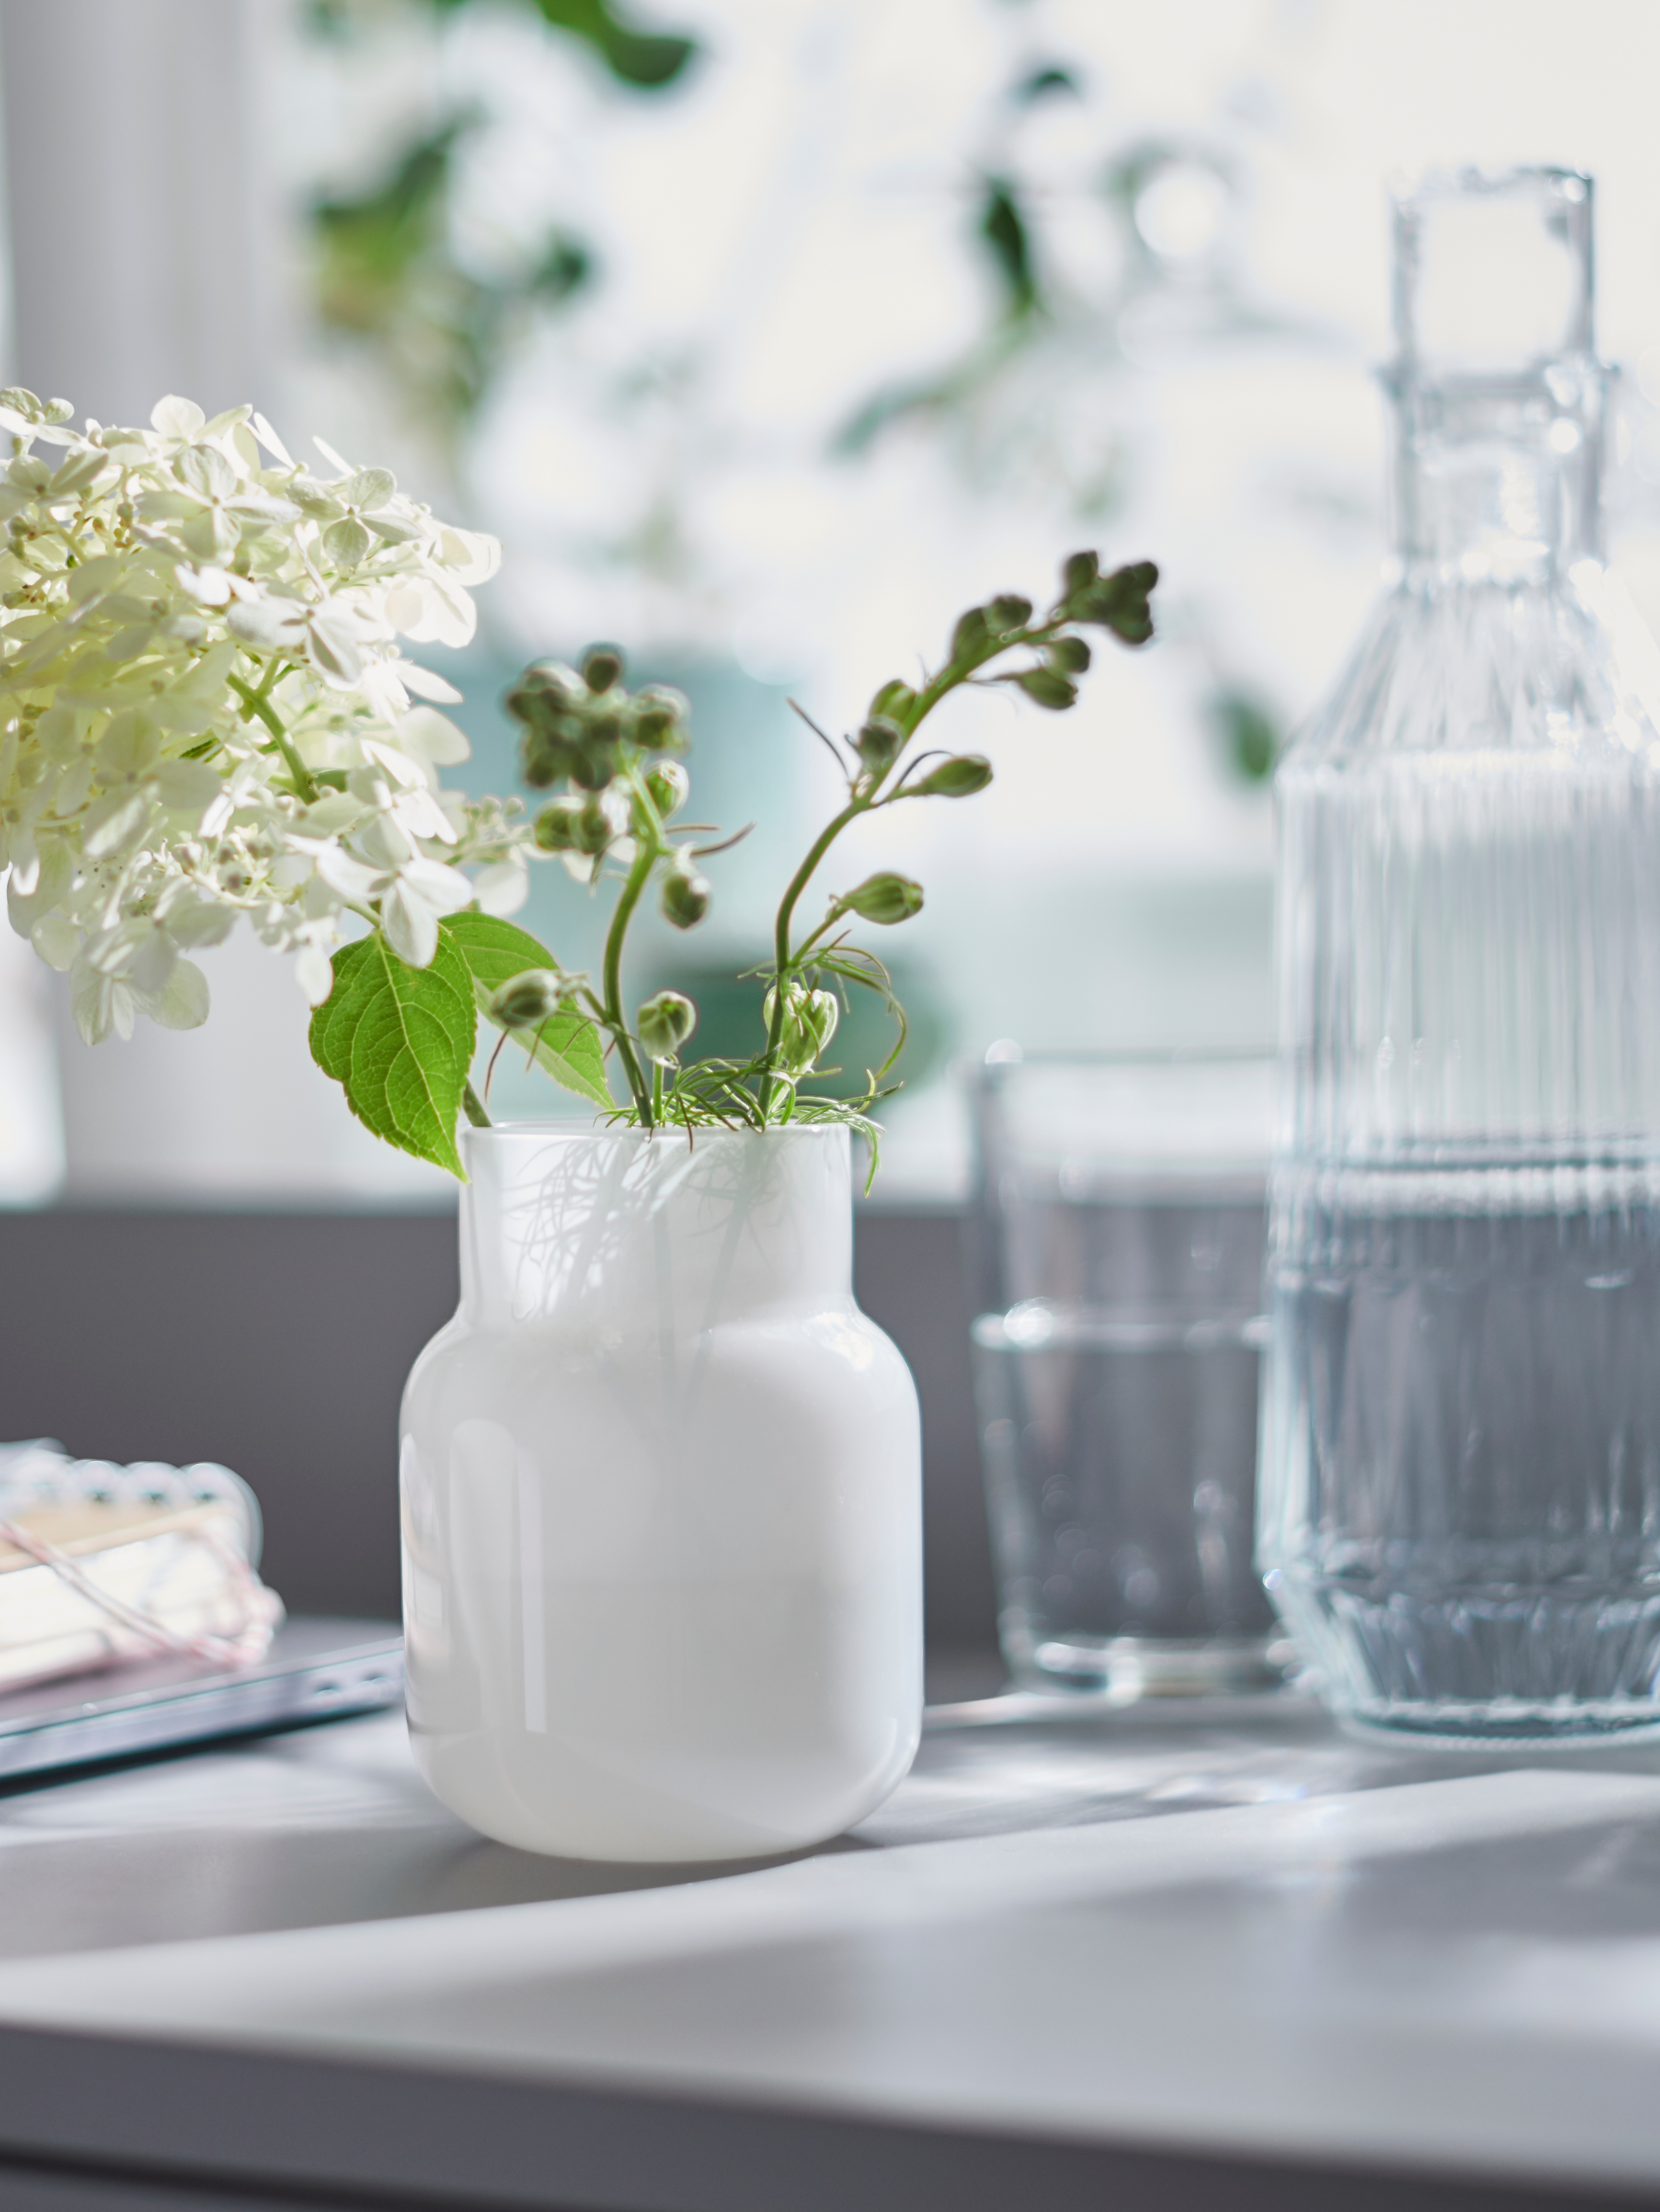 A white FÖRENLIG vase holding a white and green floral arrangement, by a clear glass bottle, in front of a bright window.